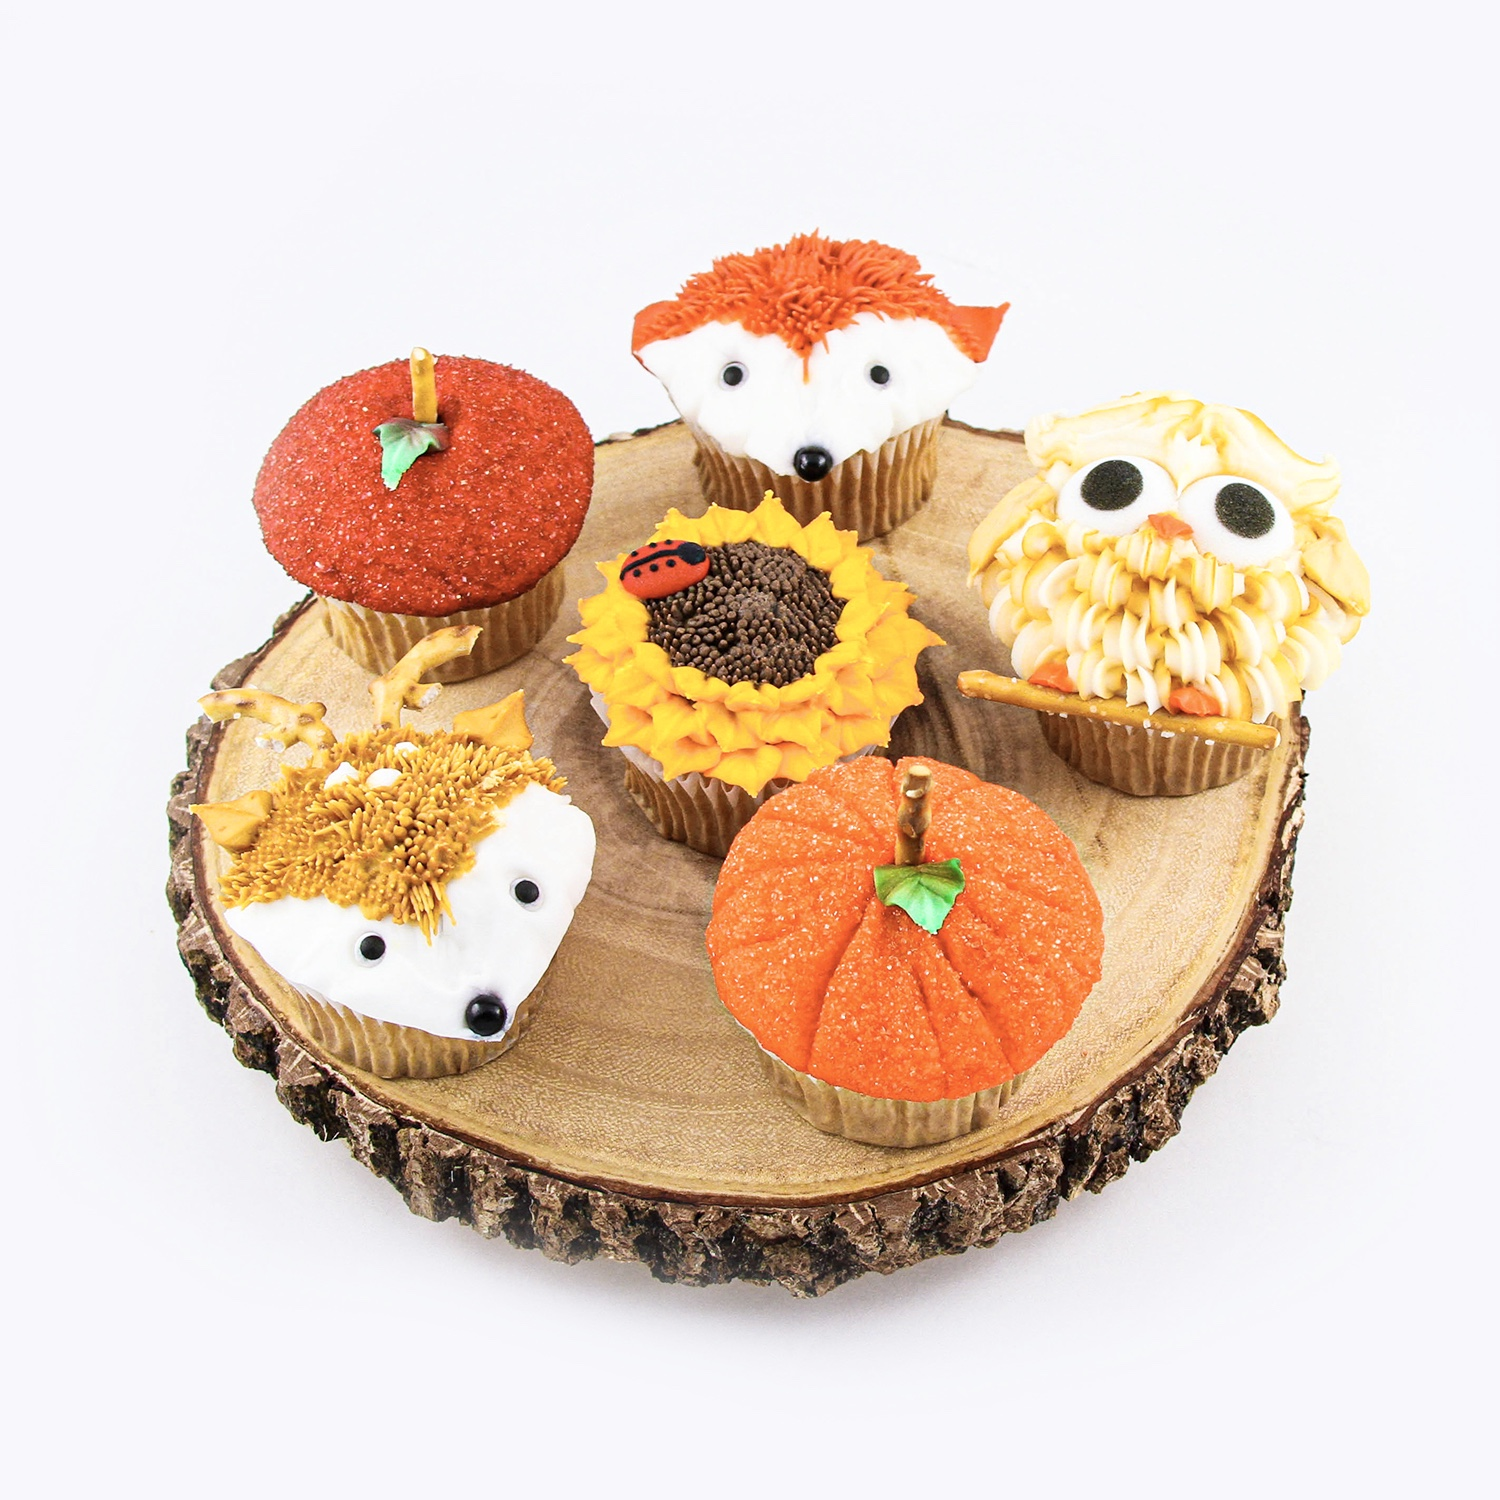 Assorted Fall Cupcakes